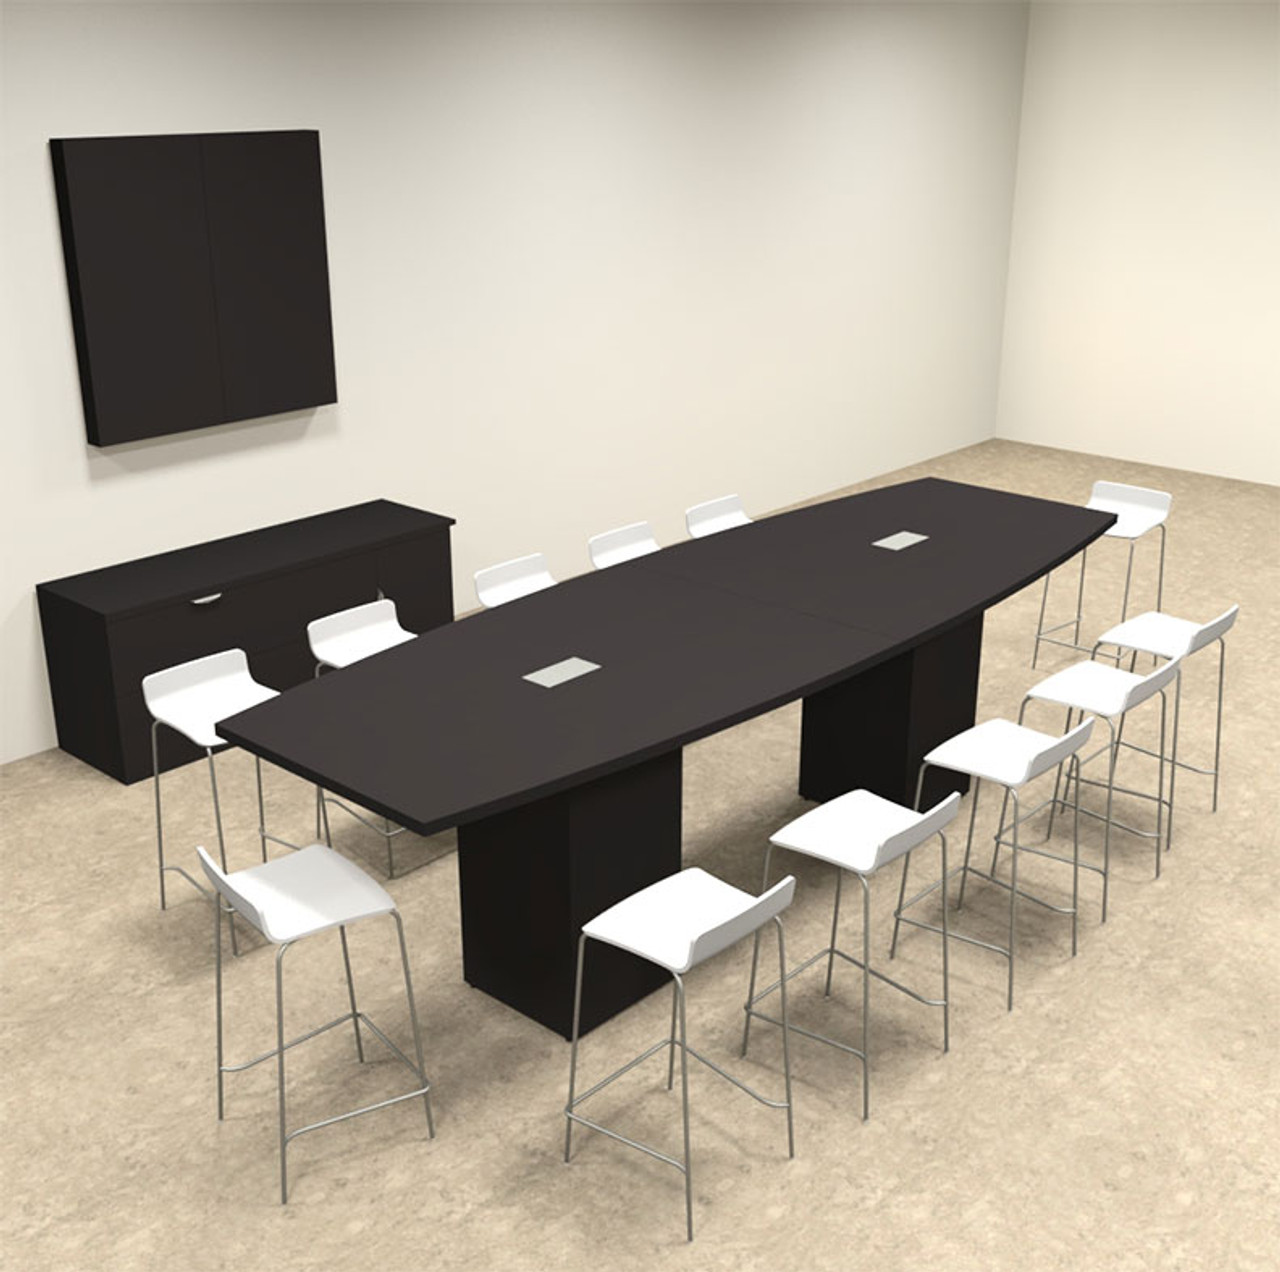 Boat Shape Counter Height 12' Feet Conference Table, #OF-CON-CT12